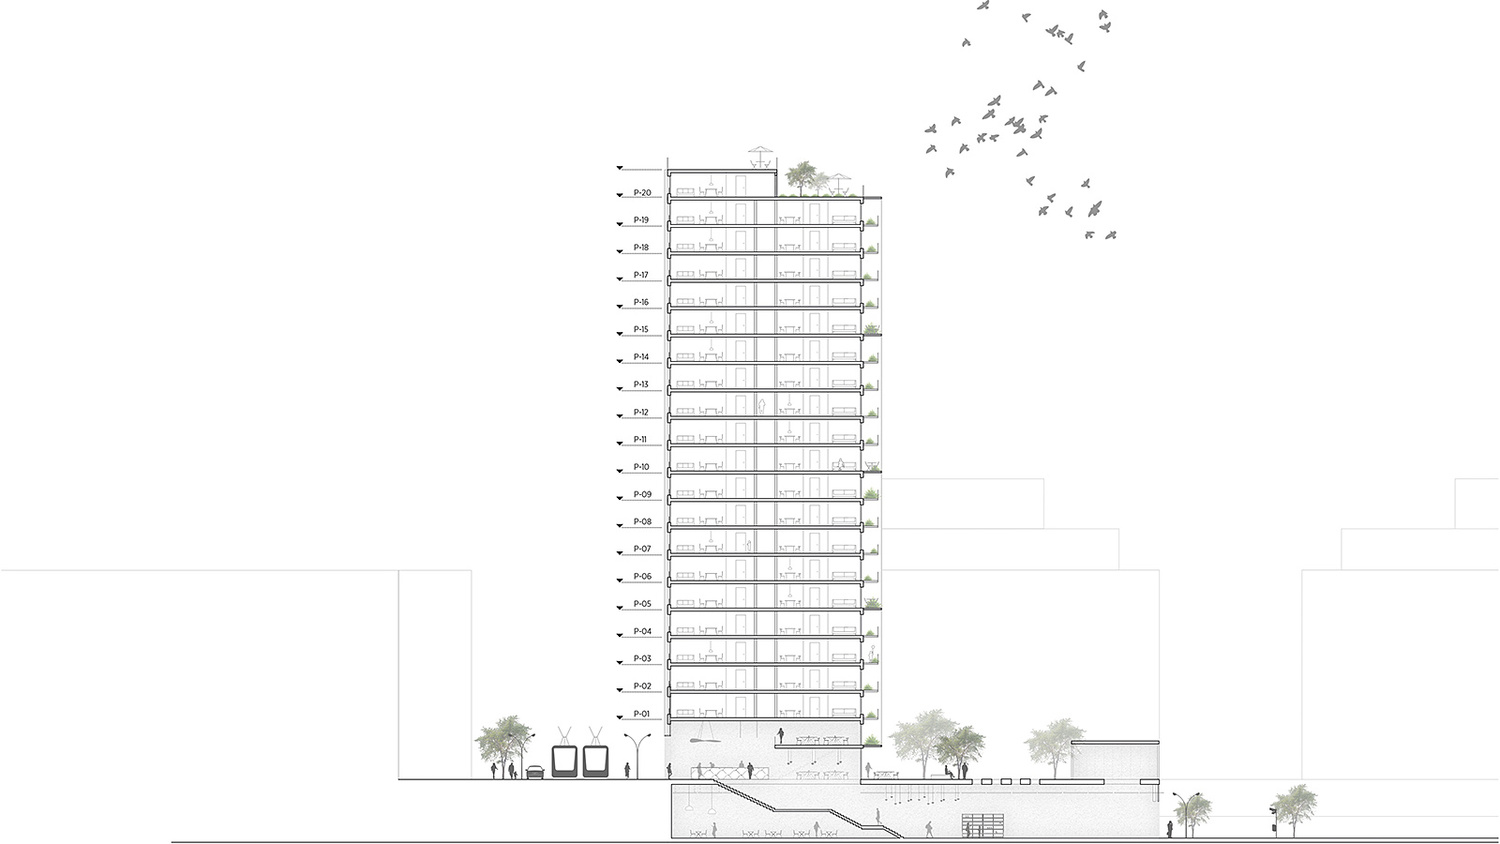 Möller Design c f møller to design geysir residential high rise in stockholm